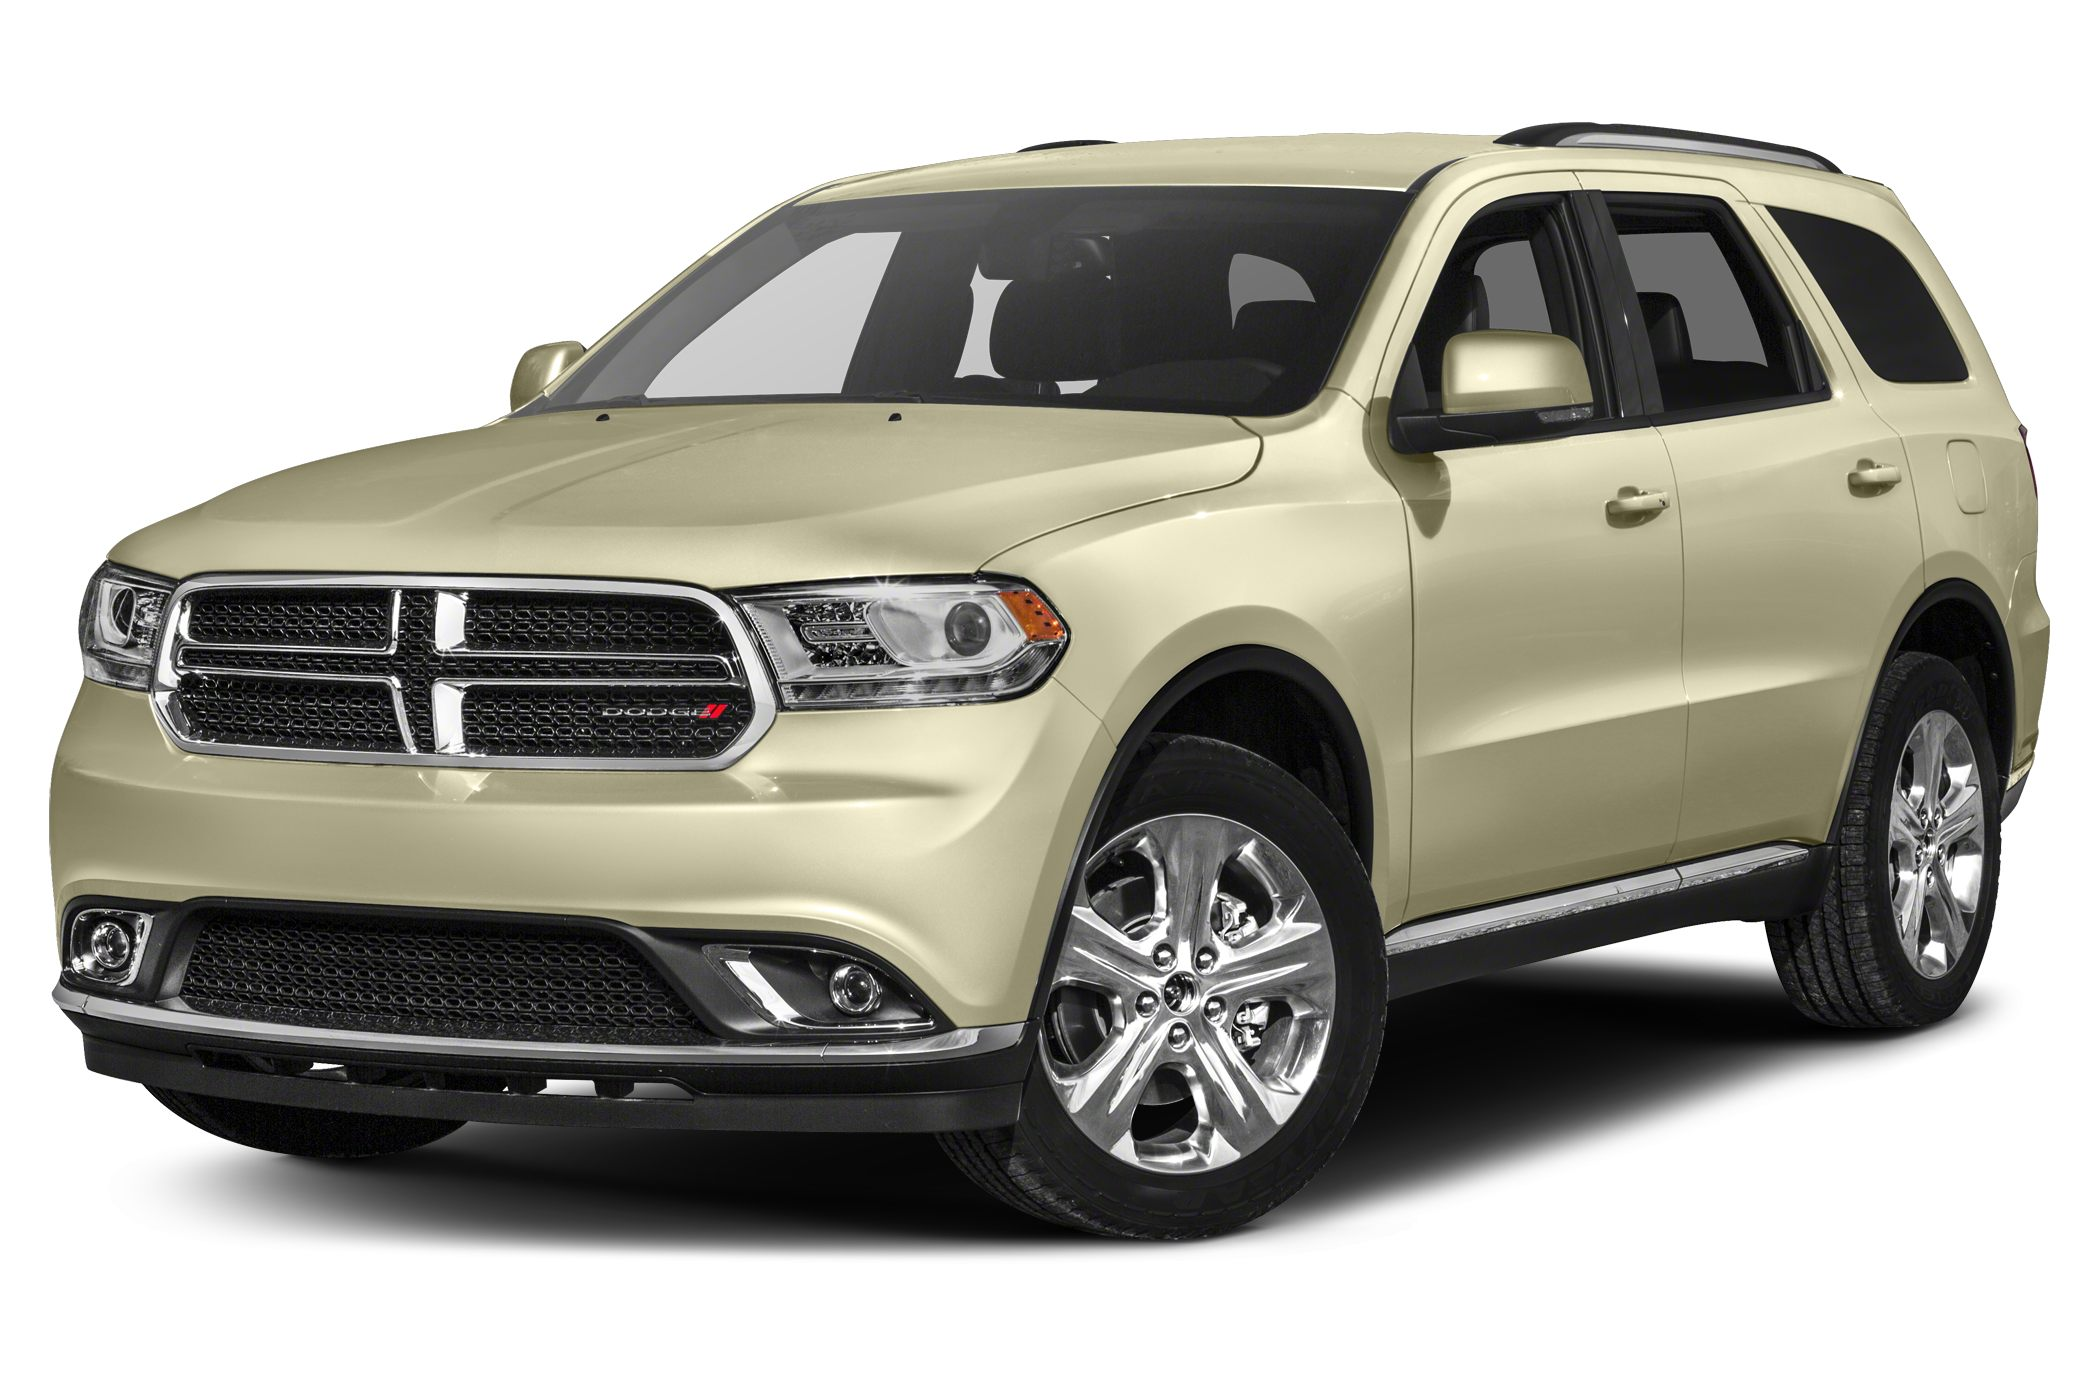 2016 Dodge Durango Limited At Advantage Chrysler you know you are getting a safe and dependable ve